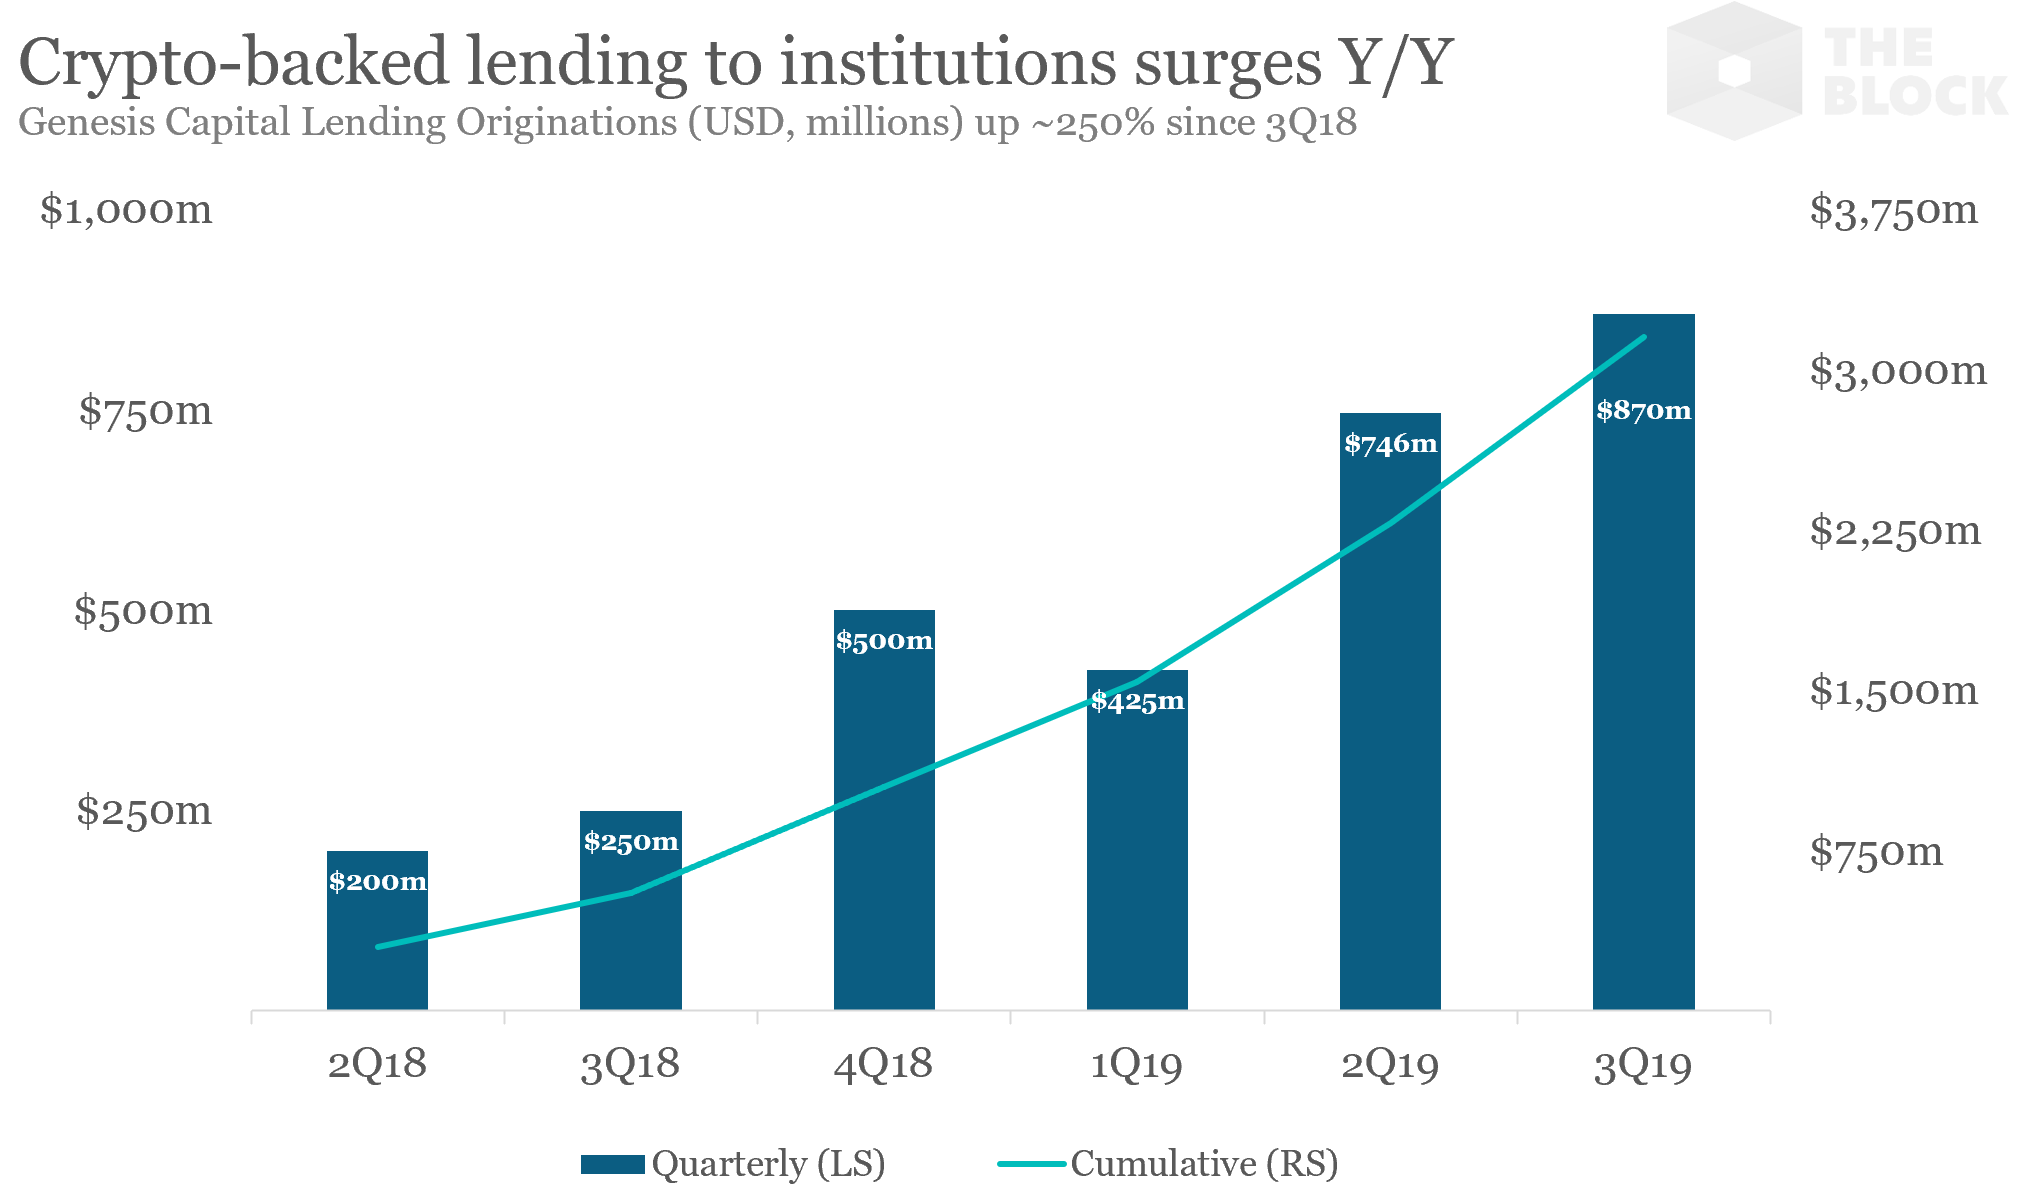 Genesis Capital Q3 lending report shows a surge in demand for BTC-backed cash loans